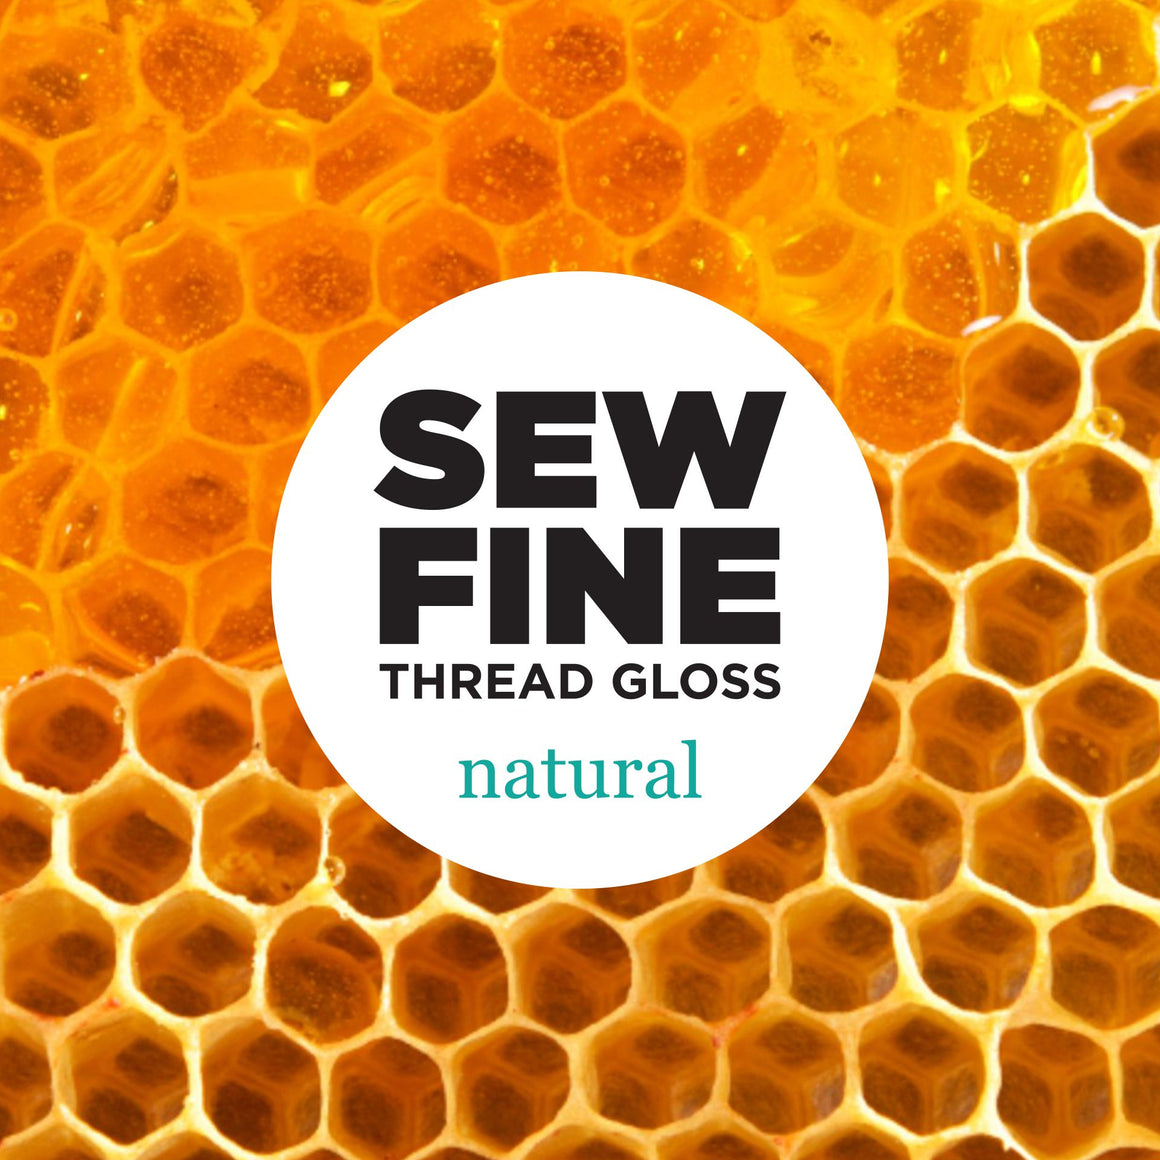 Natural -  Sew Fine Thread Gloss, Notion, Sew Fine, [variant_title] - Mad About Patchwork